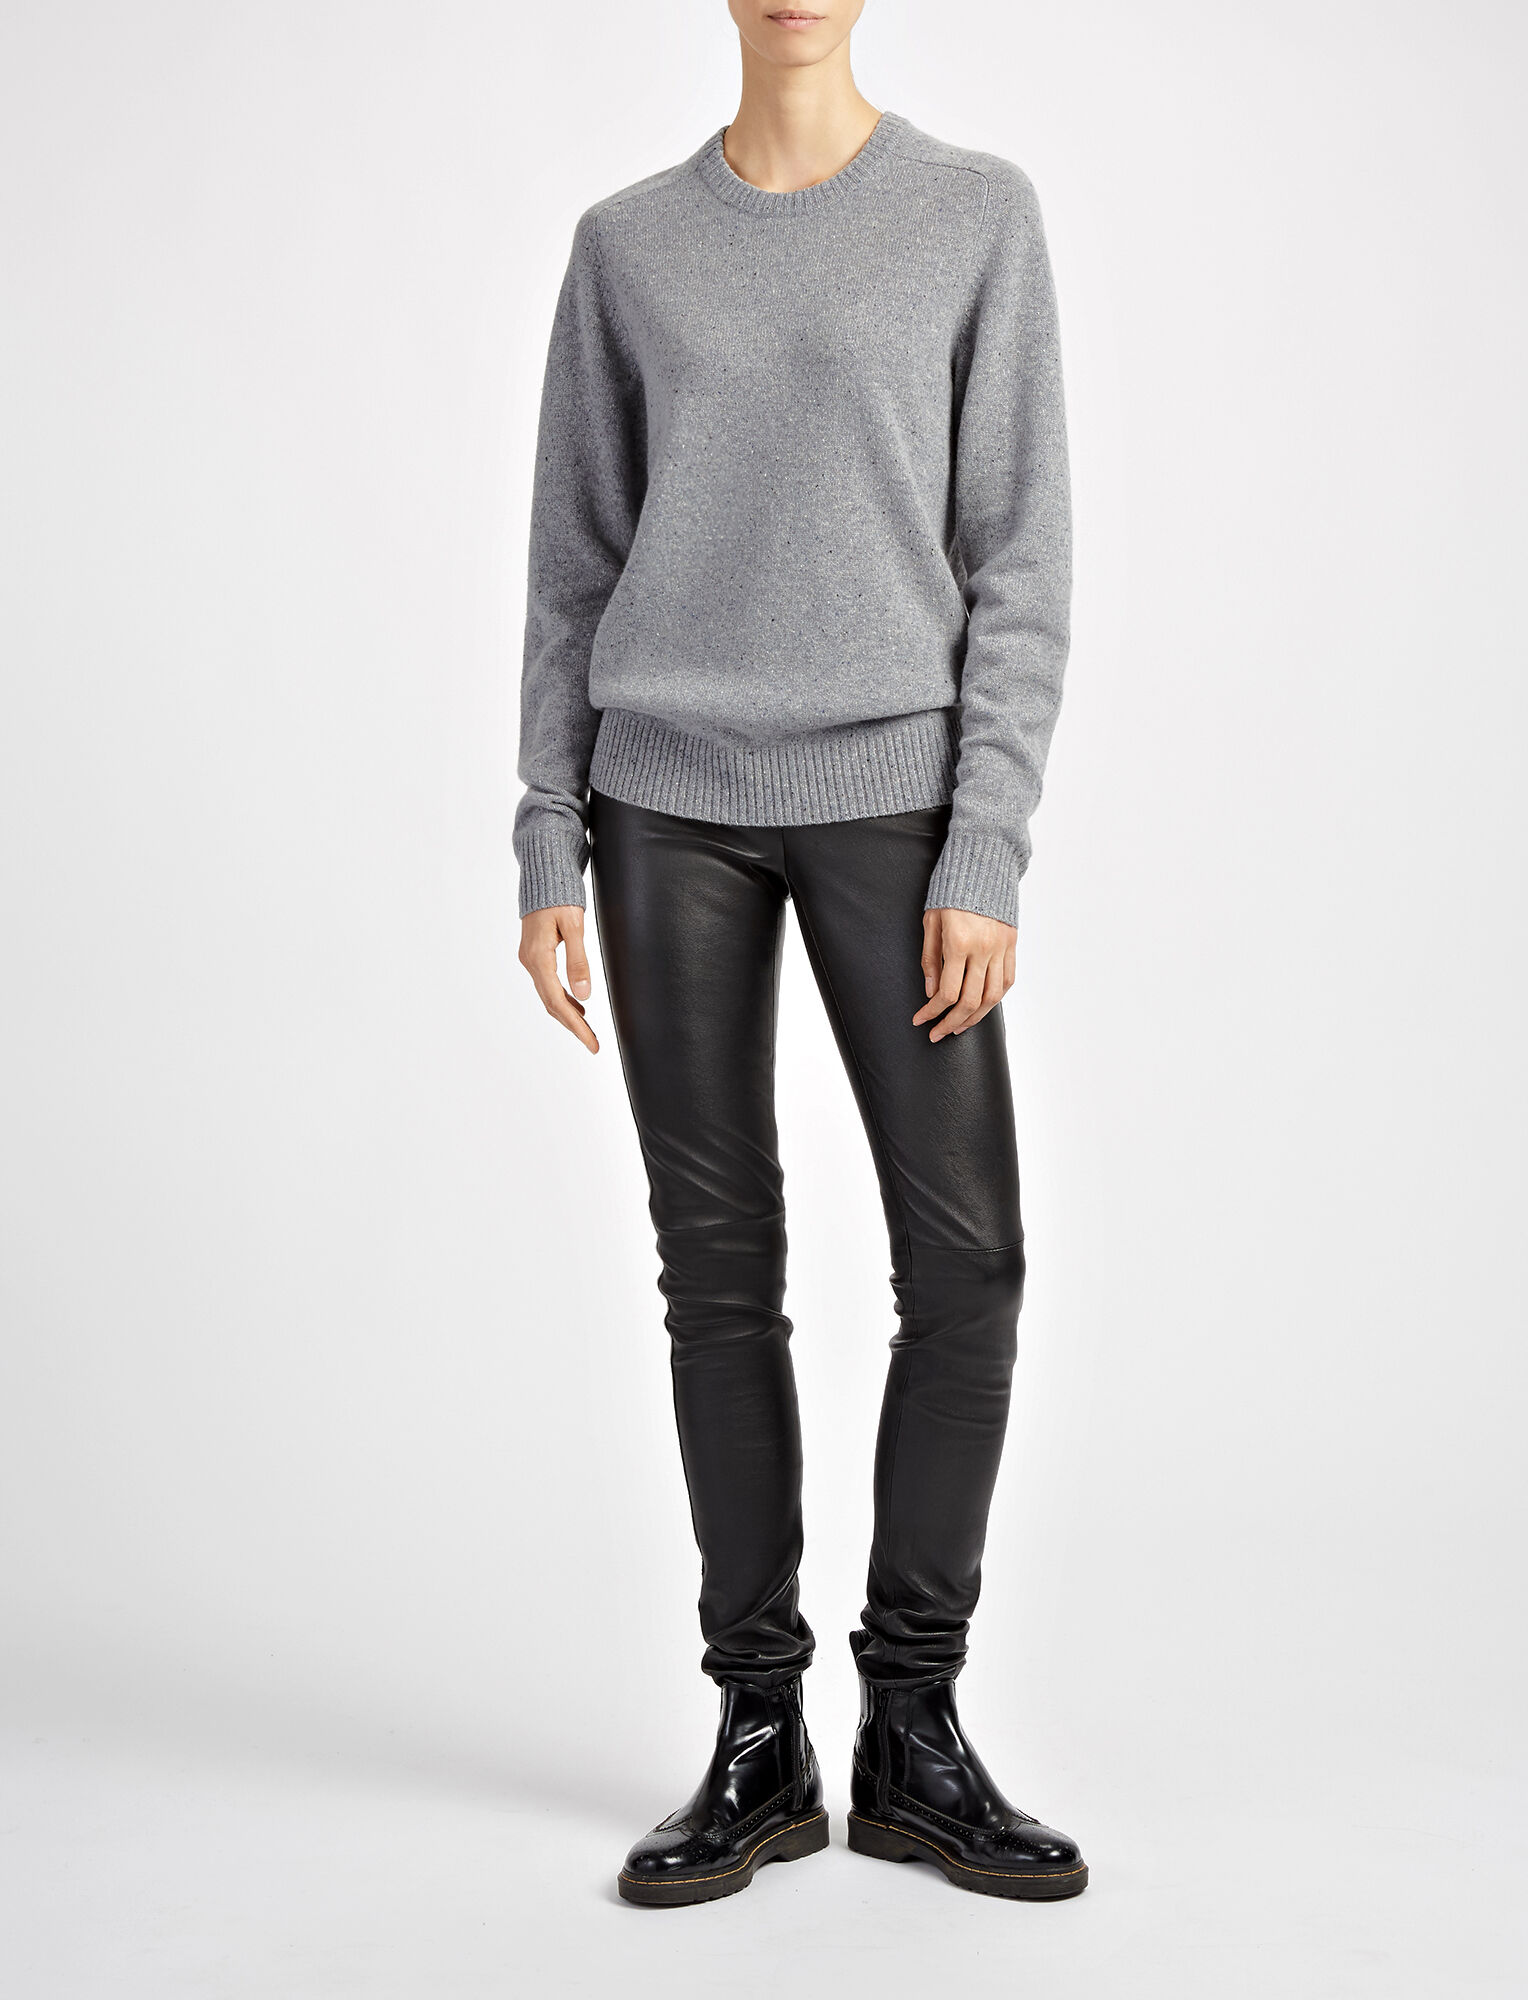 Joseph, Pure Wool Knit Sweater, in GRAPHITE